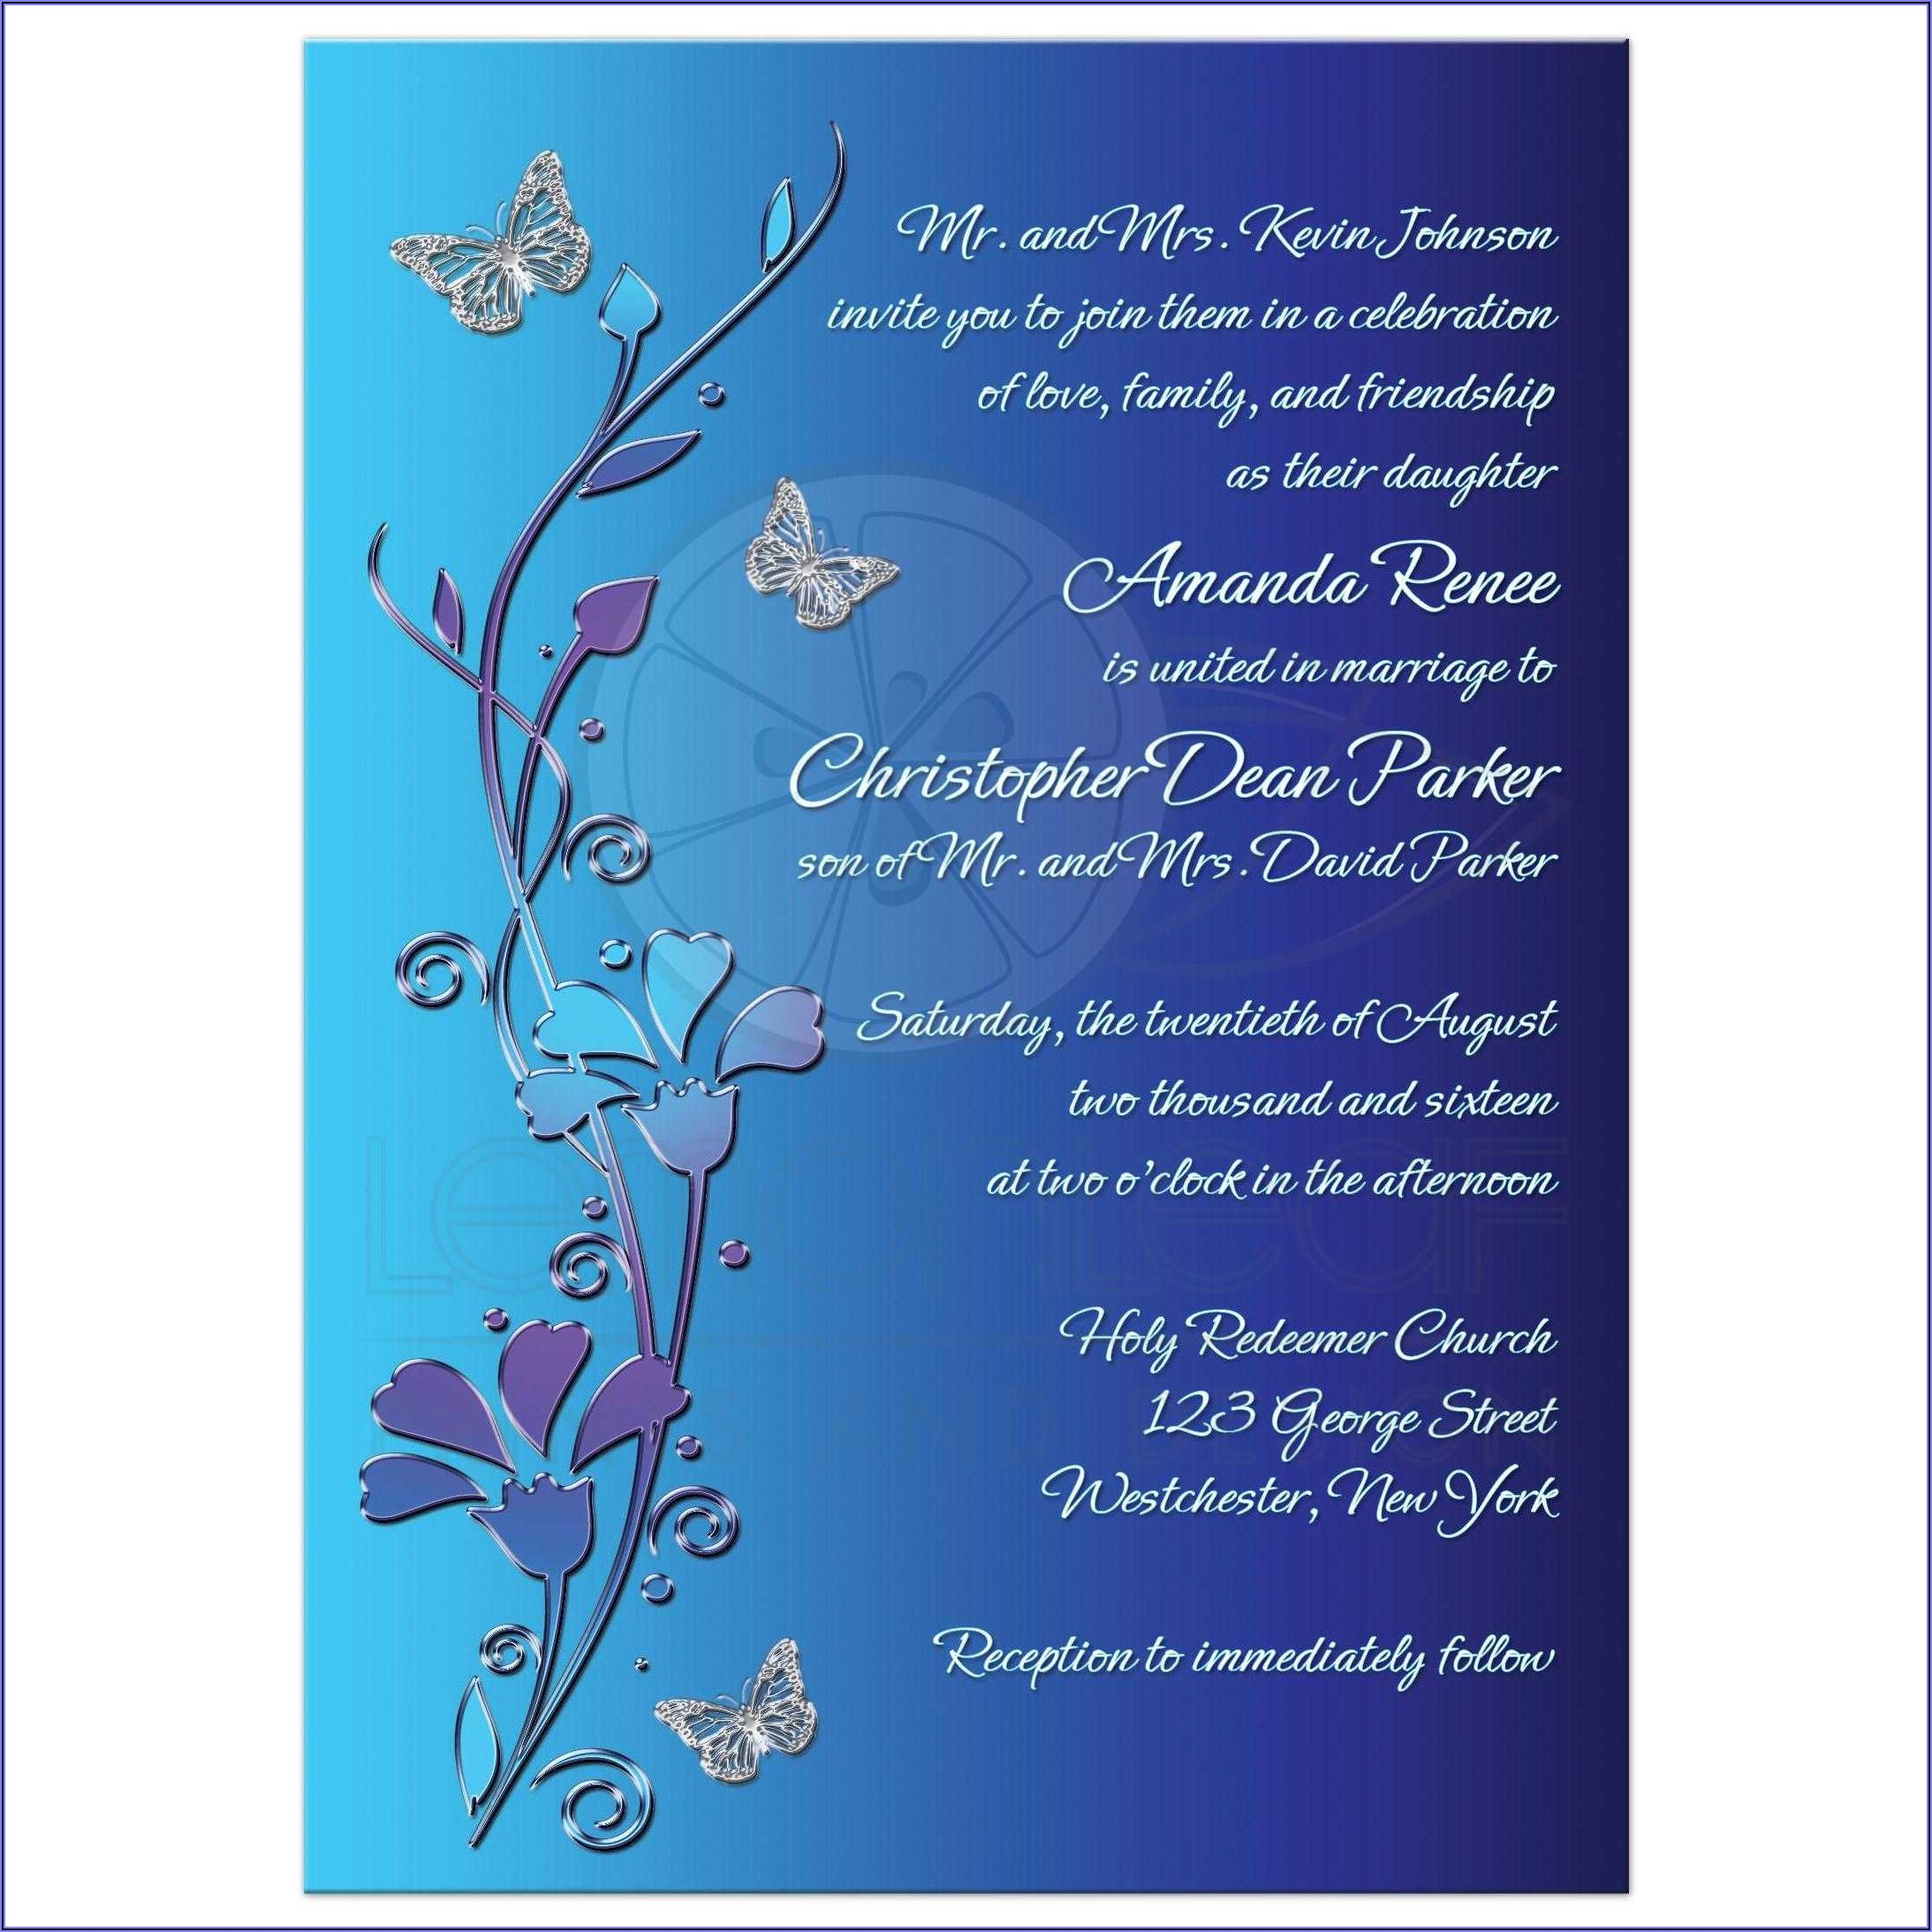 Royal Blue Wedding Invitation Background Designs Free Download